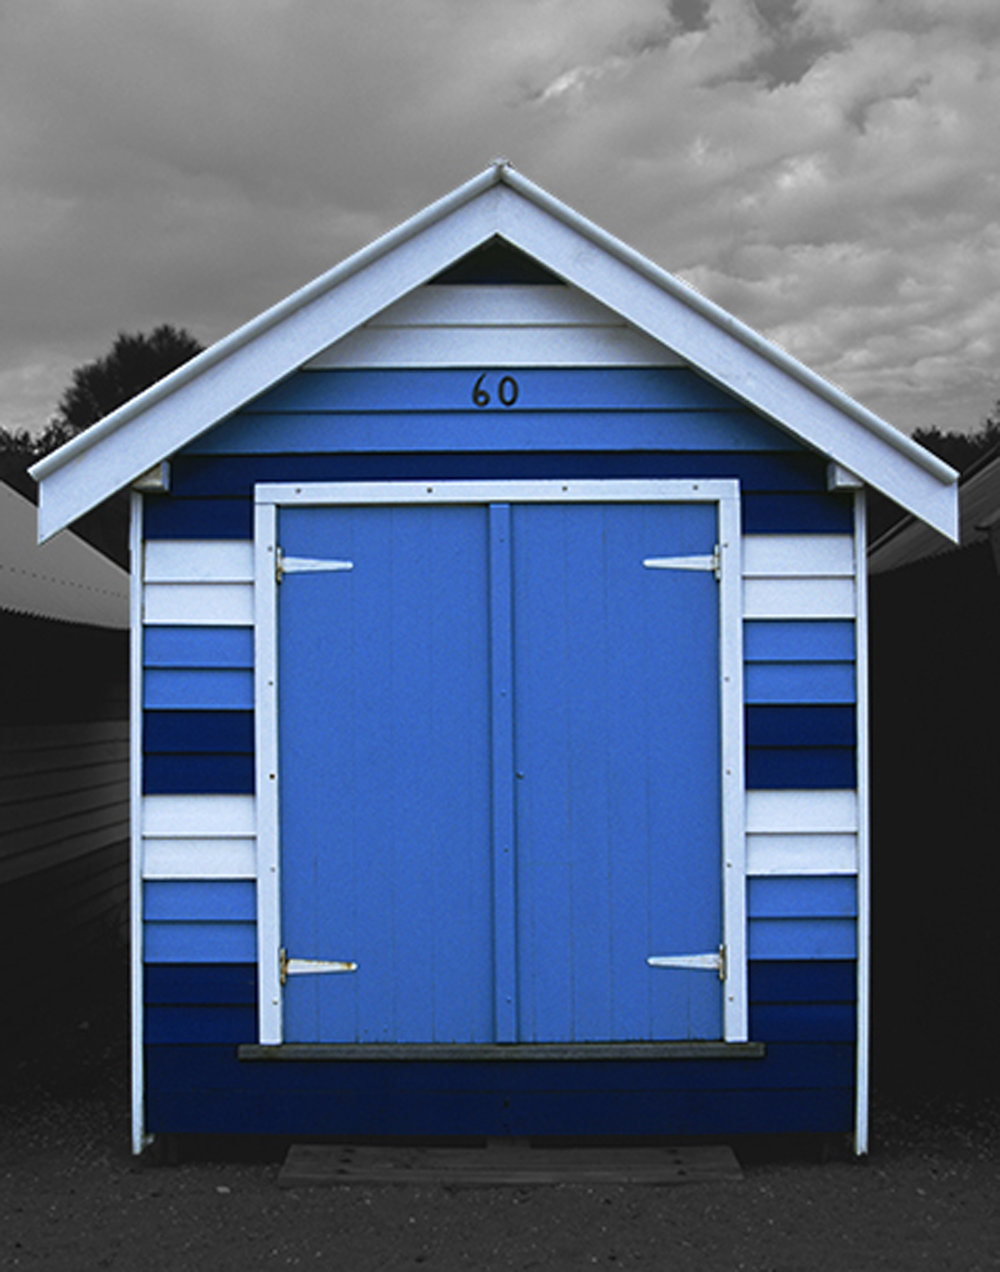 Beach Box #60, 20 x 16 inches / 50 x 40 cm, archival pigment print, edition of 15, 2003